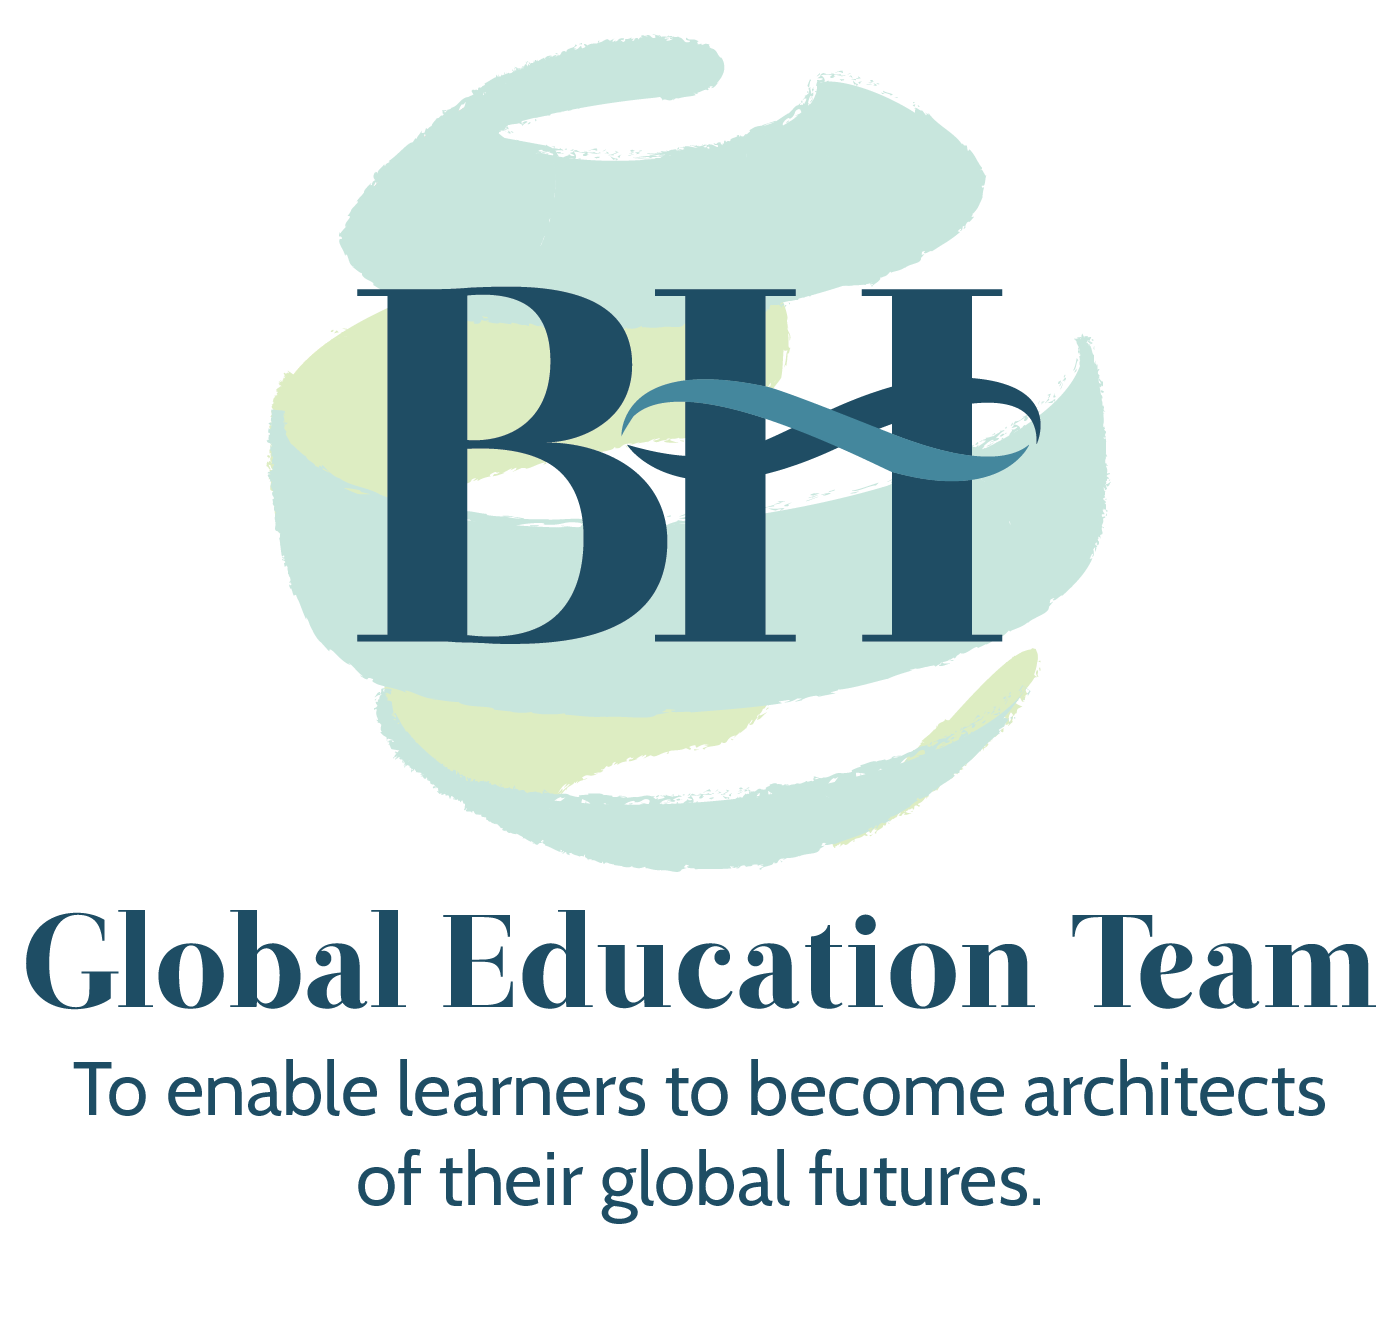 Global Education Team Logo